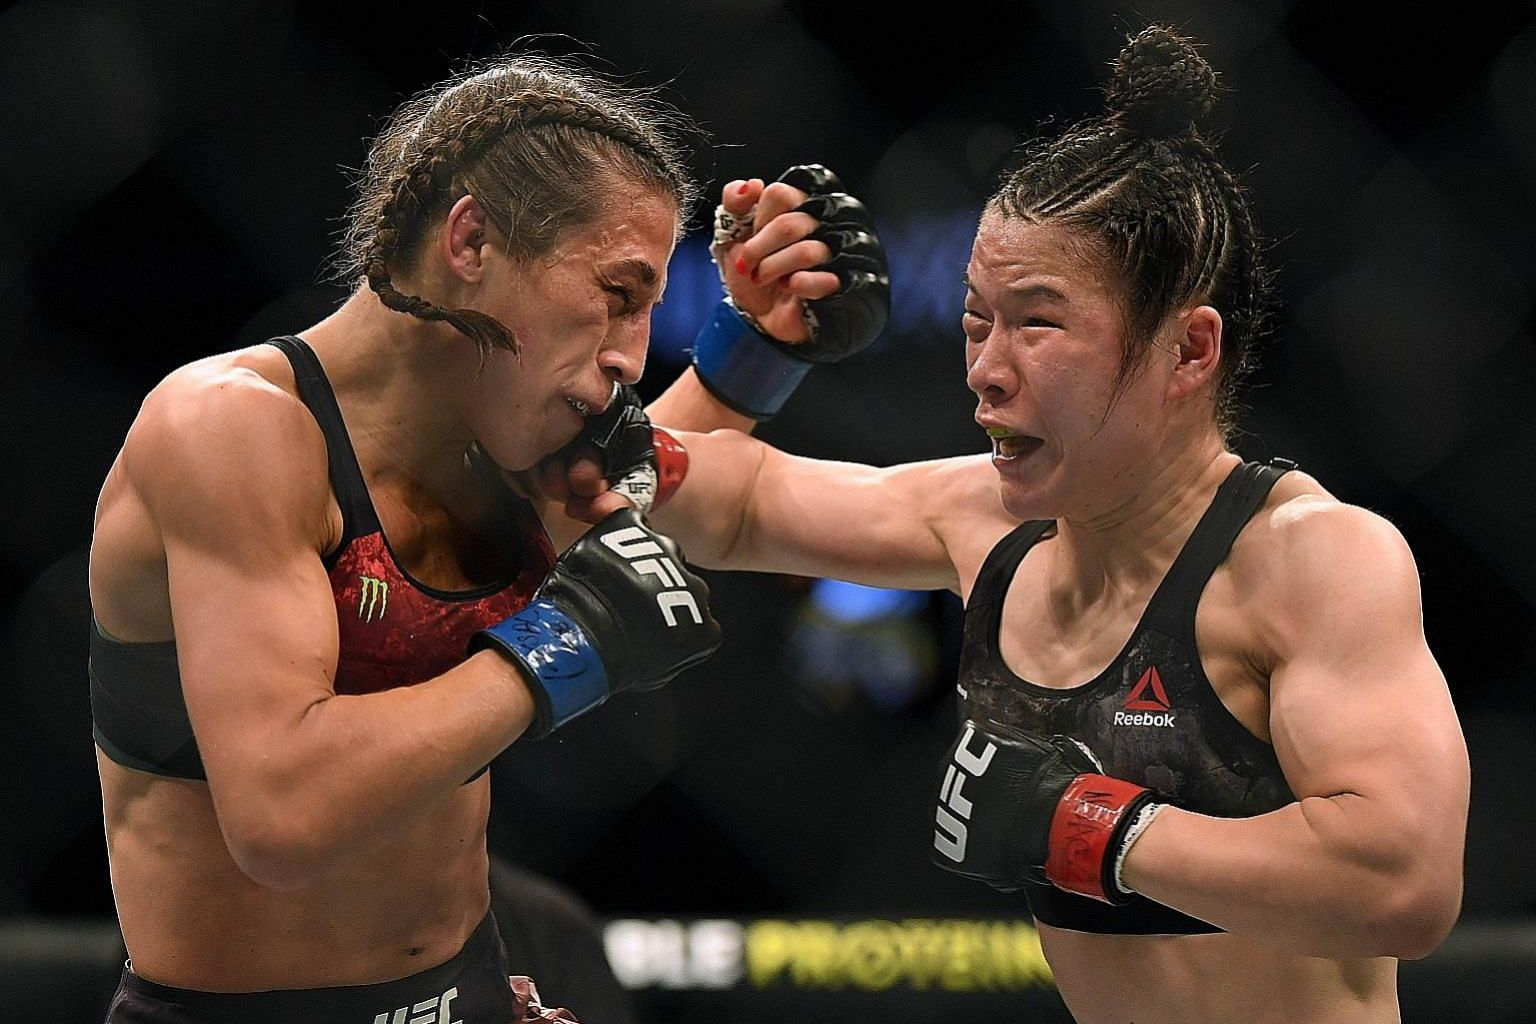 Zhang Weili punching Joanna Jedrzejczyk on her way to a split-decision win earlier this month in Las Vegas, Nevada.